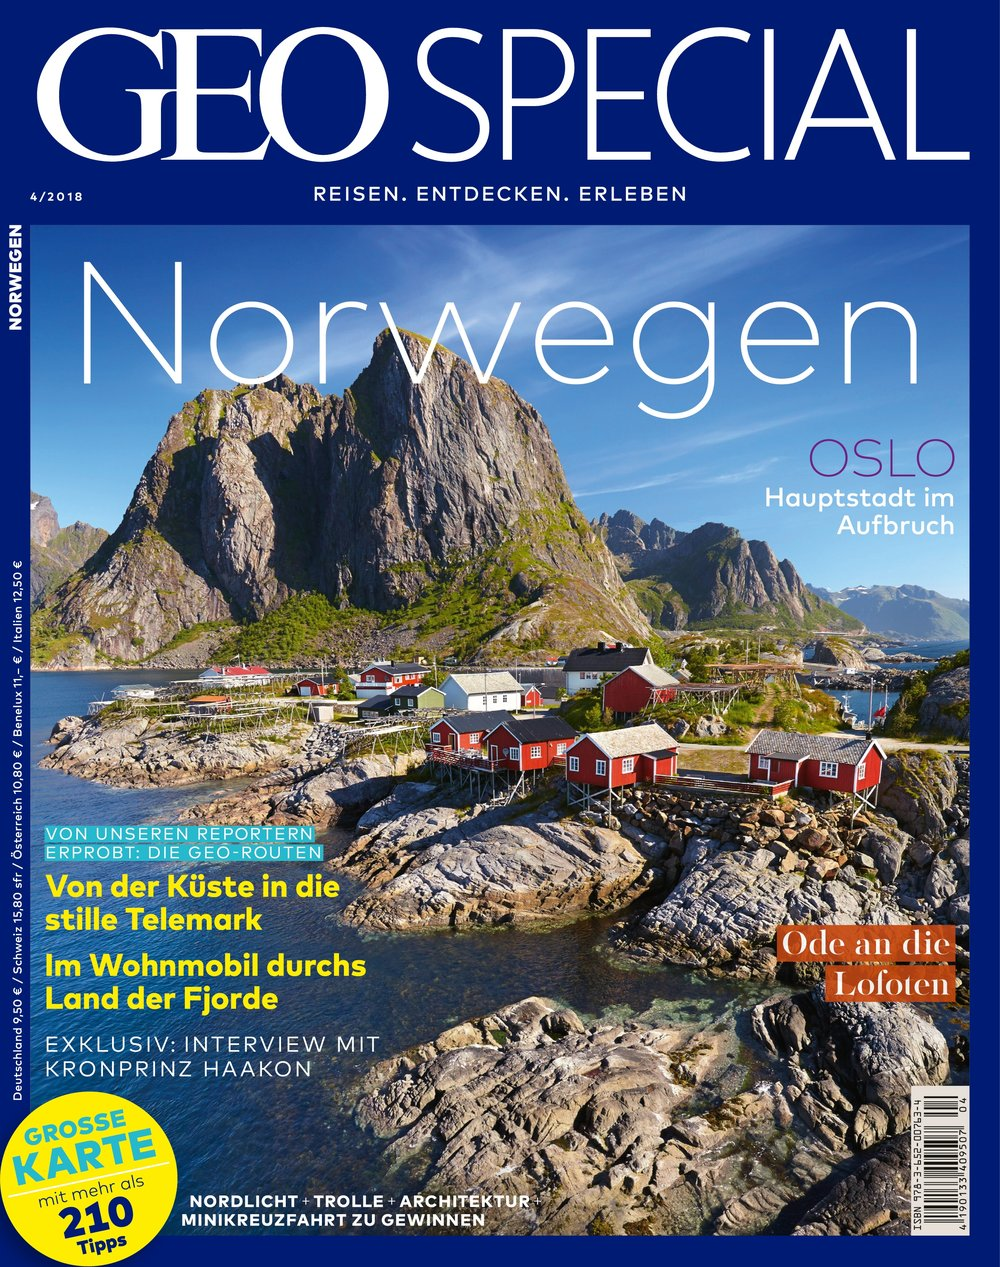 GEO SPECIAL 04/2018